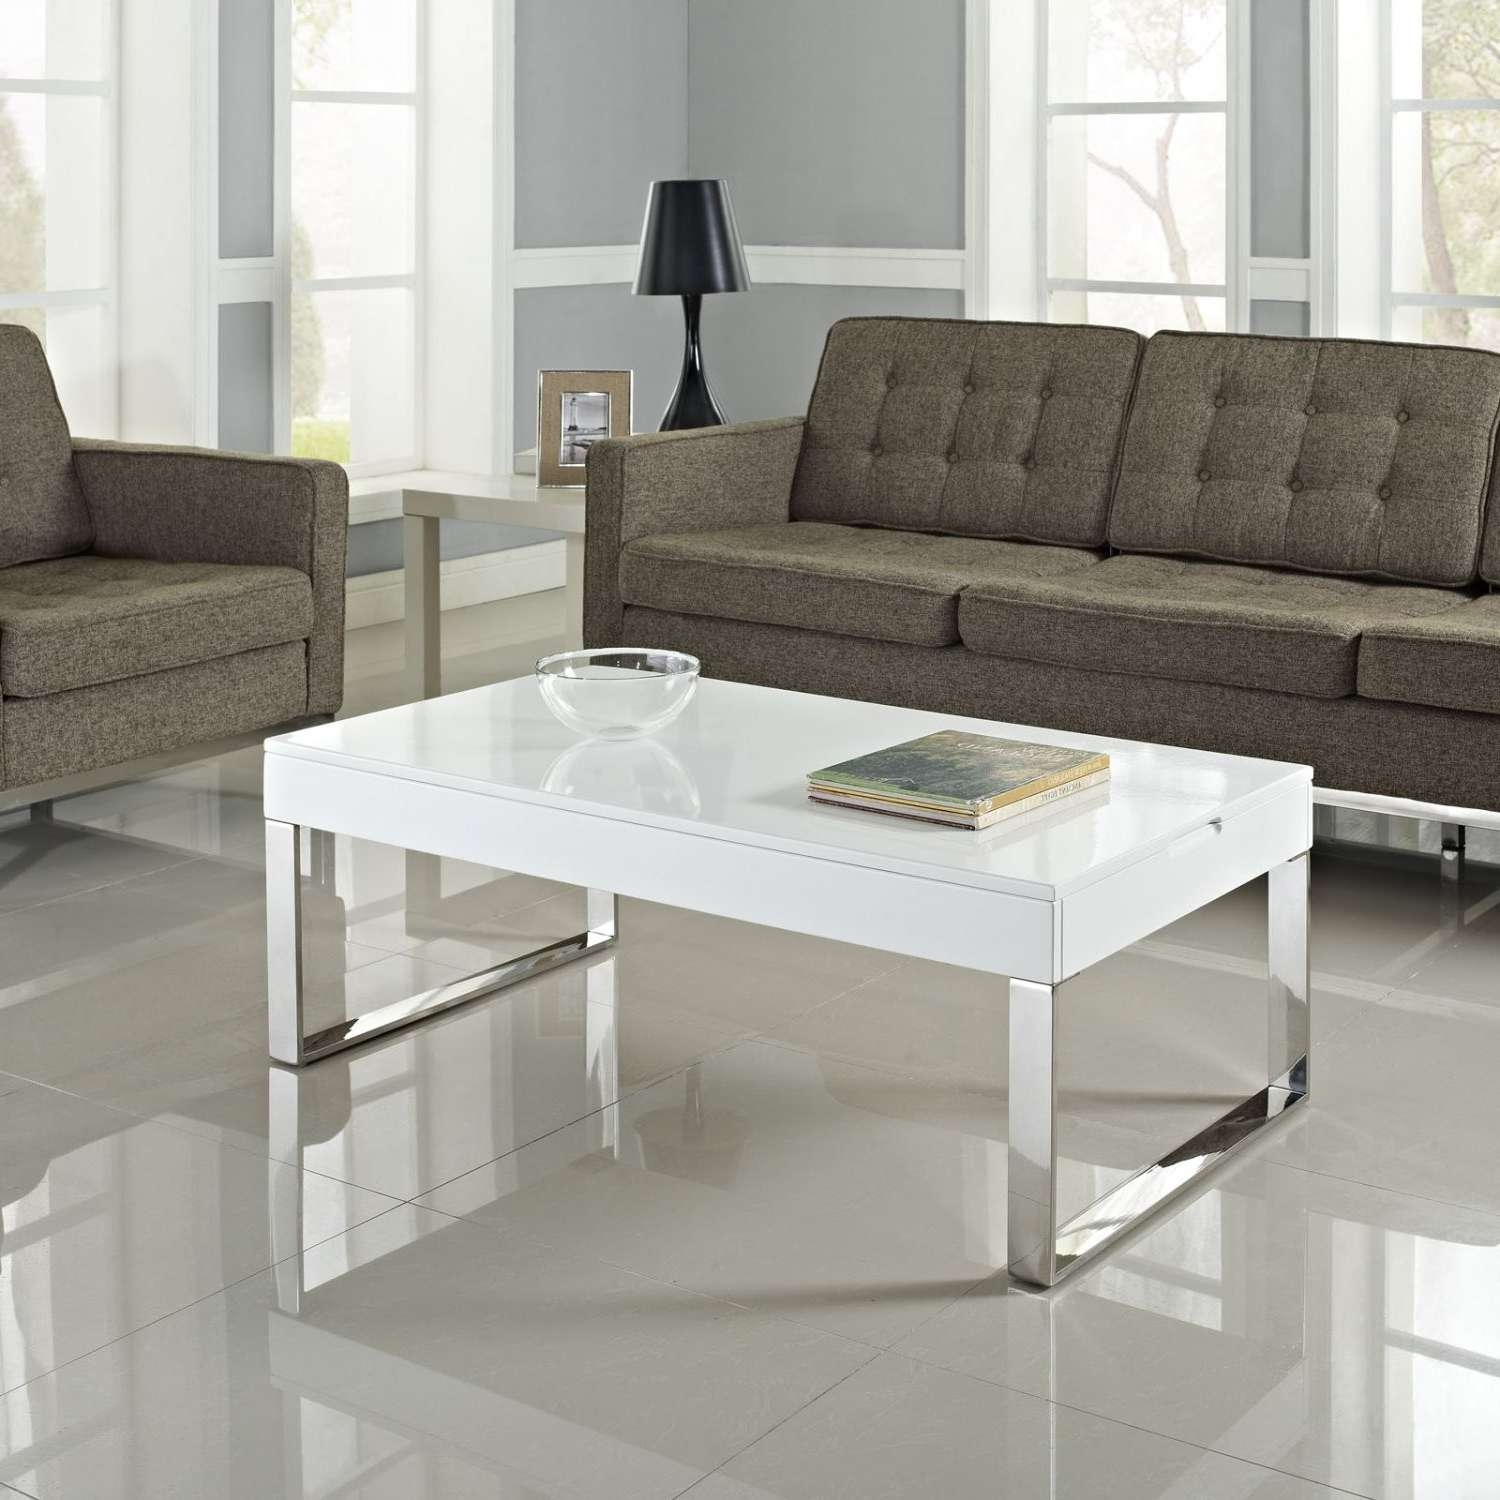 White Gloss Lift Coffee Table – All Furniture Usa Within Trendy White High Gloss Coffee Tables (View 16 of 20)